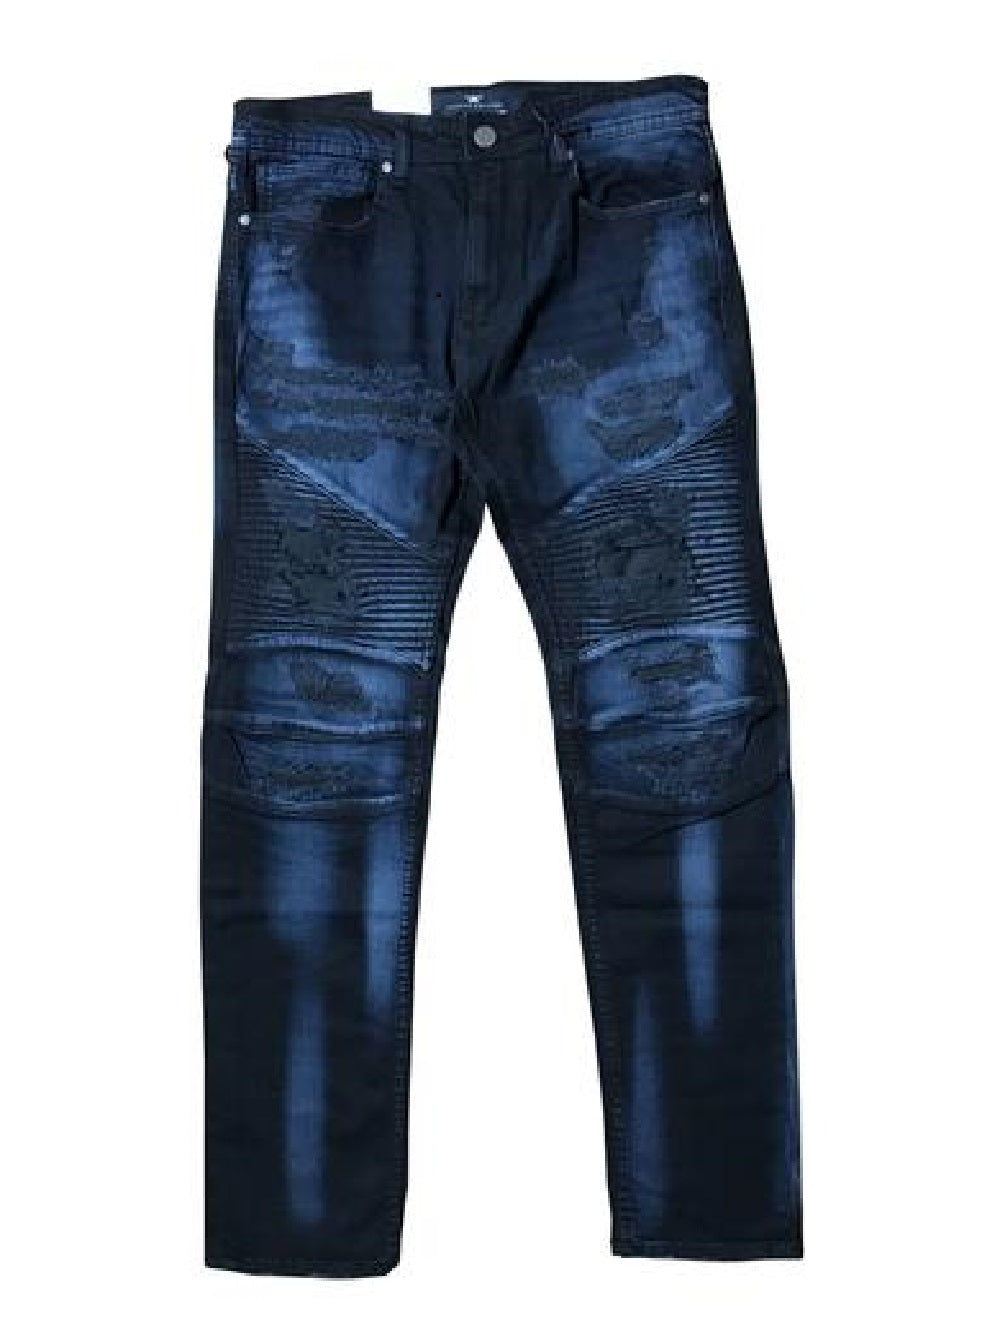 JORDAN CRAIG MARAUDER MOTO DENIM - MIDNIGHT BLUE